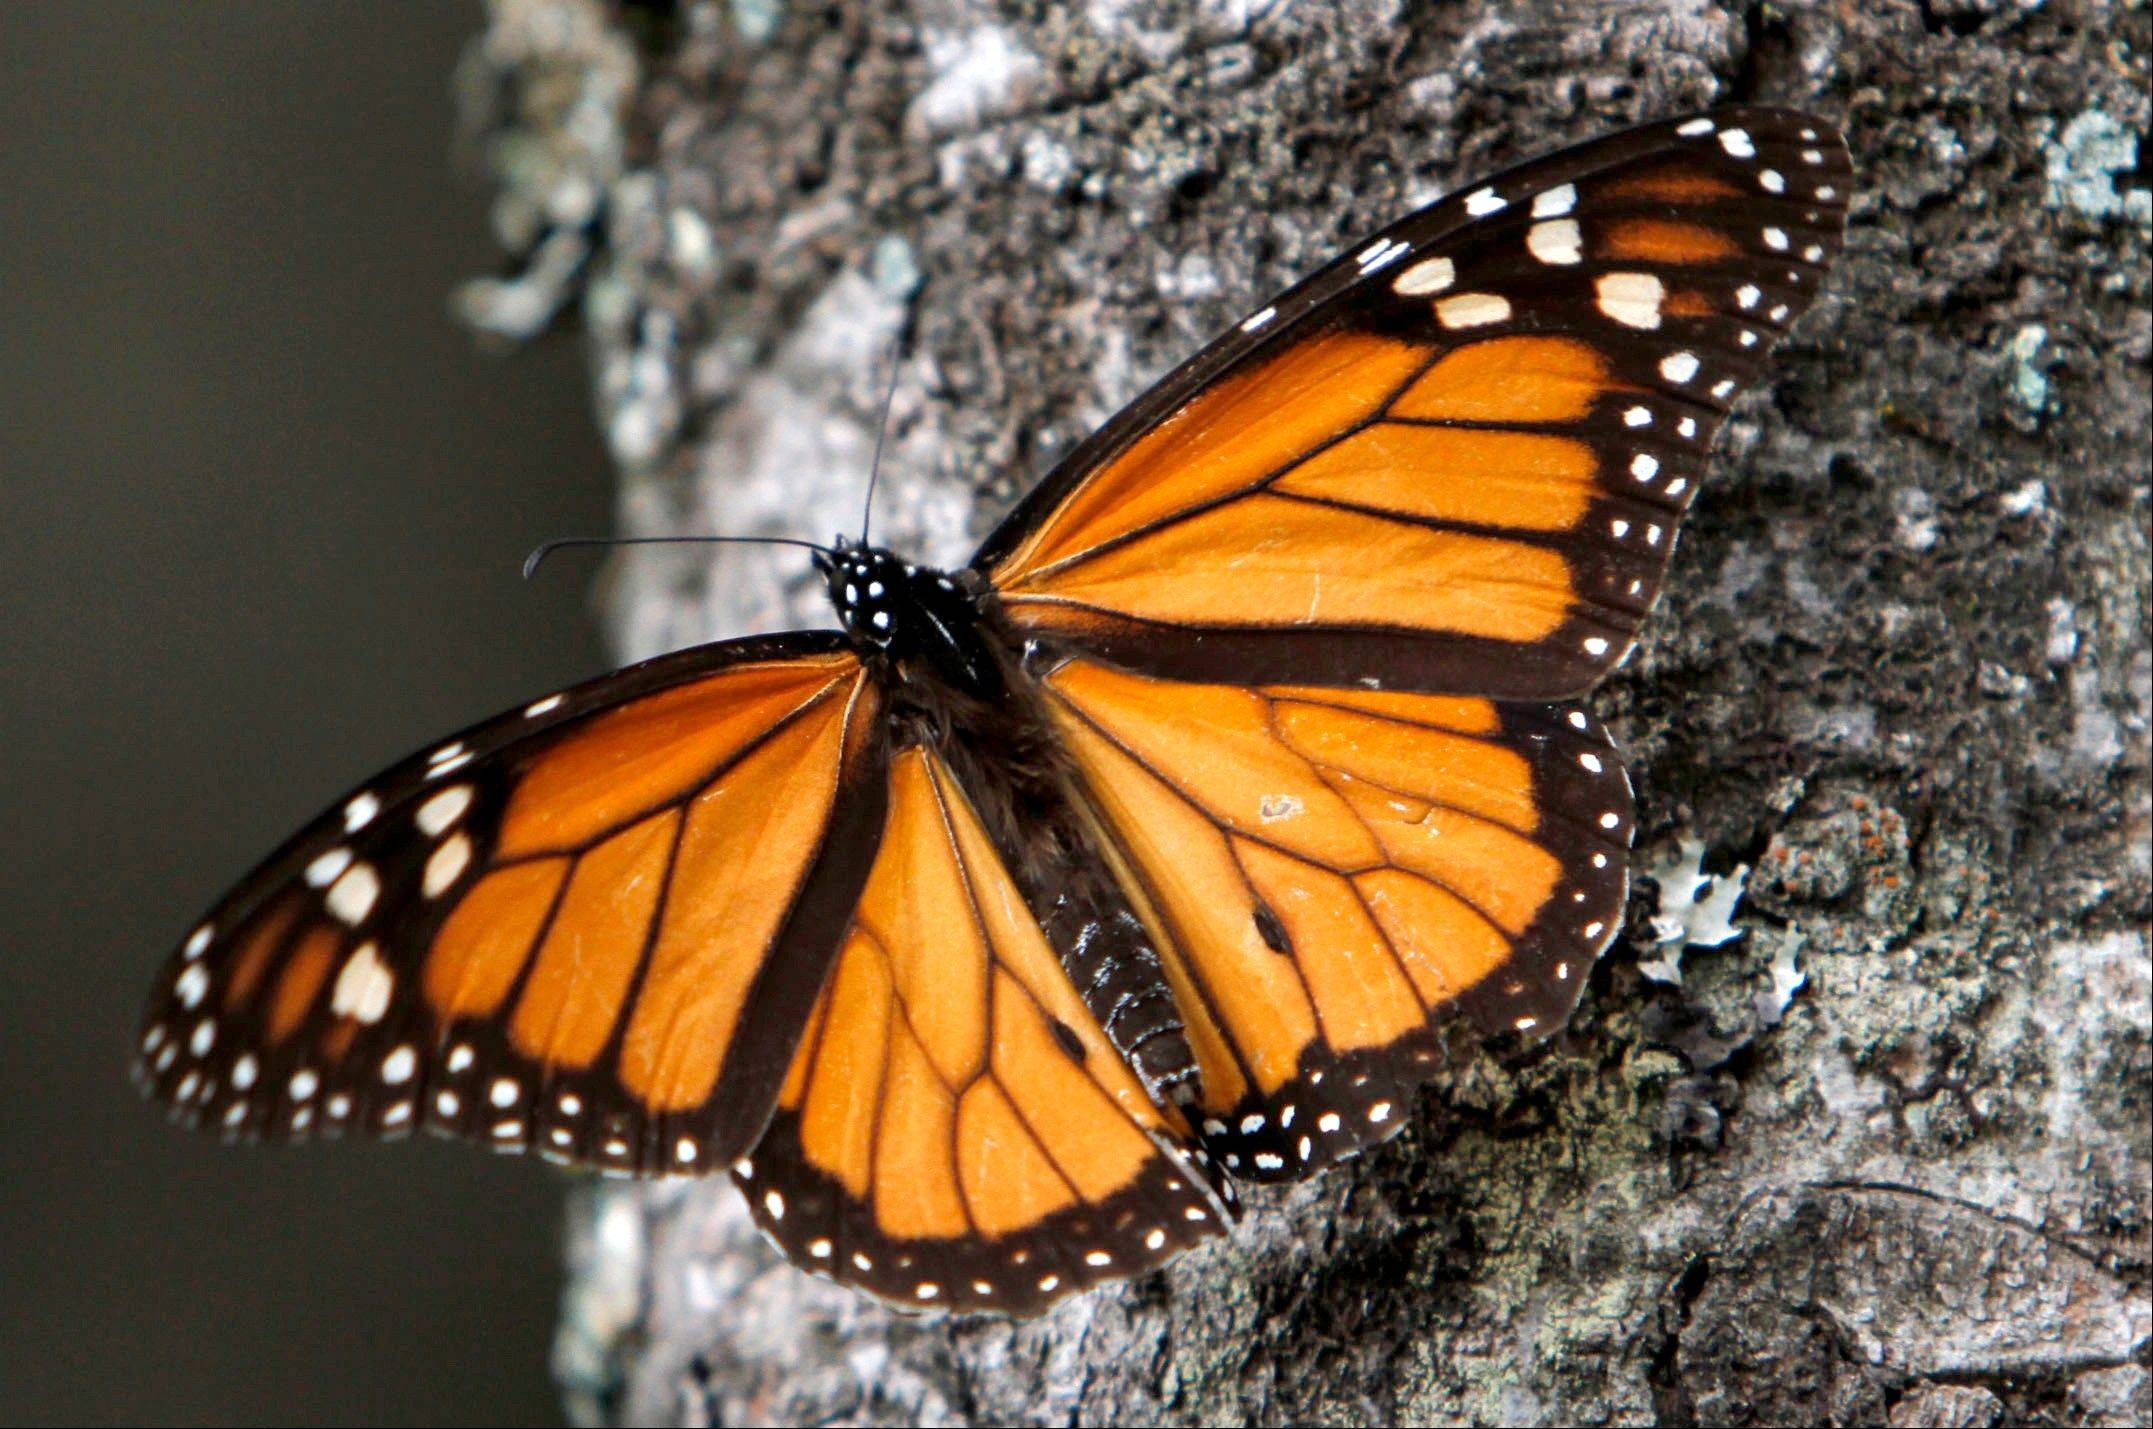 A Monarch butterfly sits on a tree trunk at the Sierra Chincua Sanctuary in the mountains of Mexico's Michoacan state. The number of Monarch butterflies wintering in Mexico dropped 59 percent in 2013, falling to the lowest level since comparable record-keeping began 20 years ago, scientists reported.